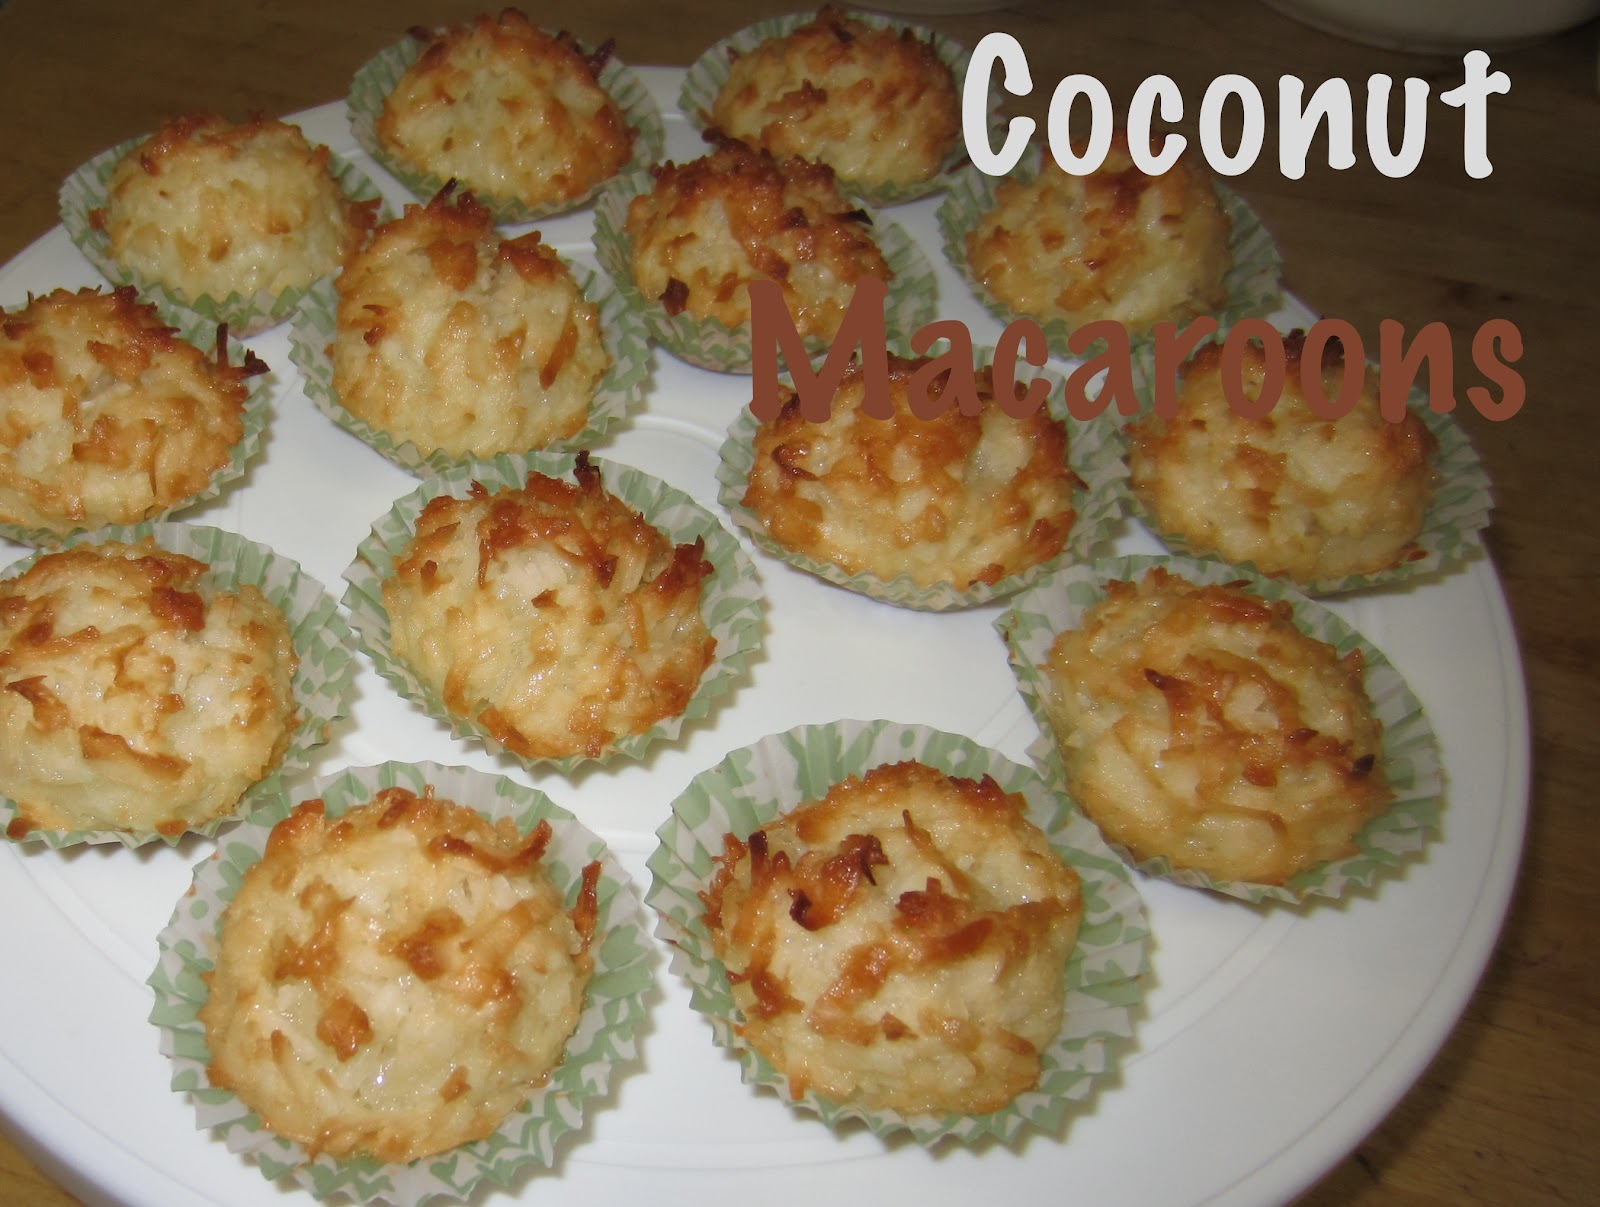 Sugar-Coated Delights: Happy Mother's Day & Coconut Macaroons!